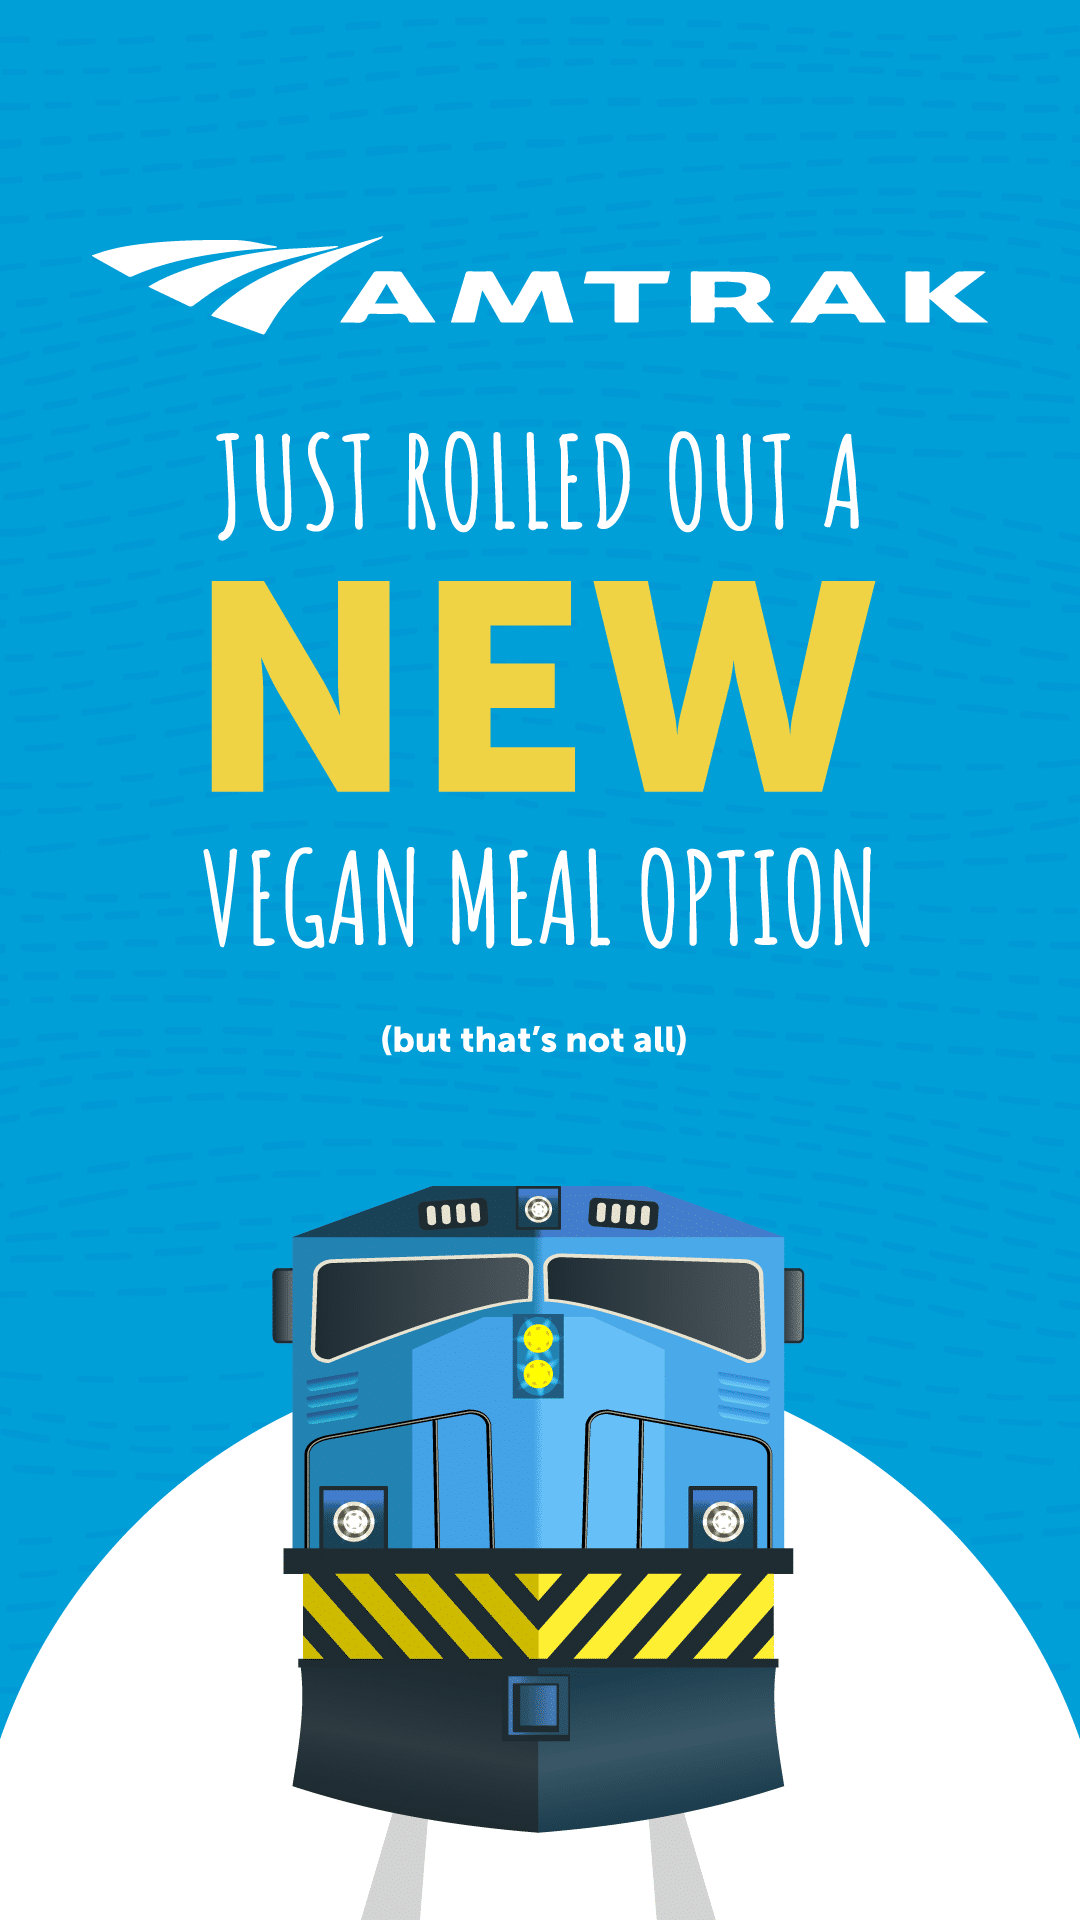 Amtrak Just Rolled Out a New Vegan Meal Option but That's Not All